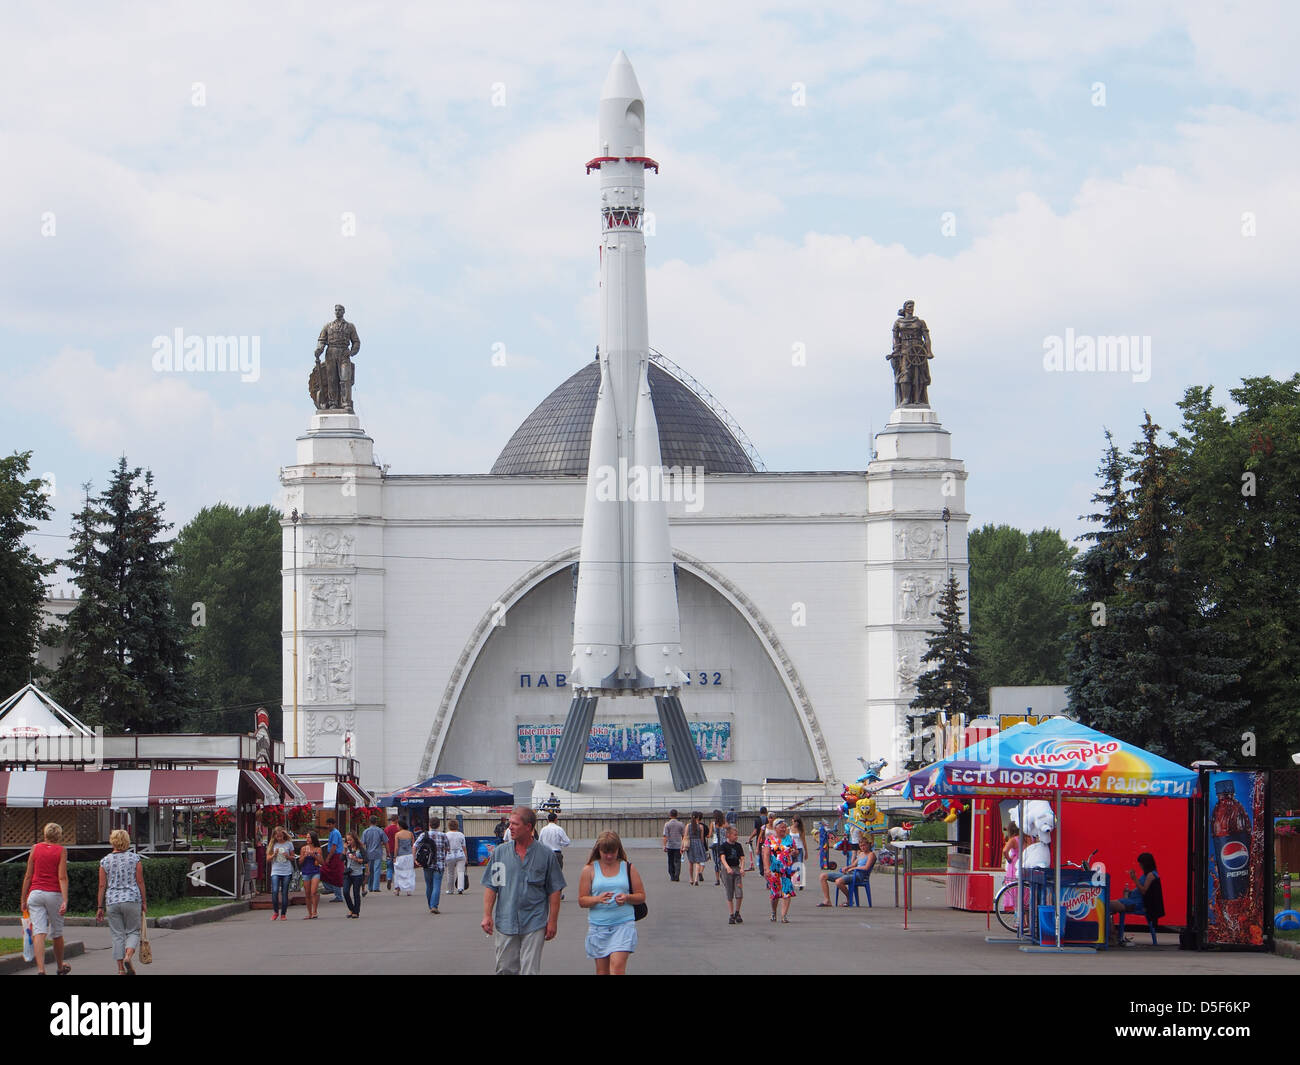 The Aerospace (Mechanization) Pavilion and Vostok Rocket at the All-Russia Exhibition Center in Moscow, Russia - Stock Image